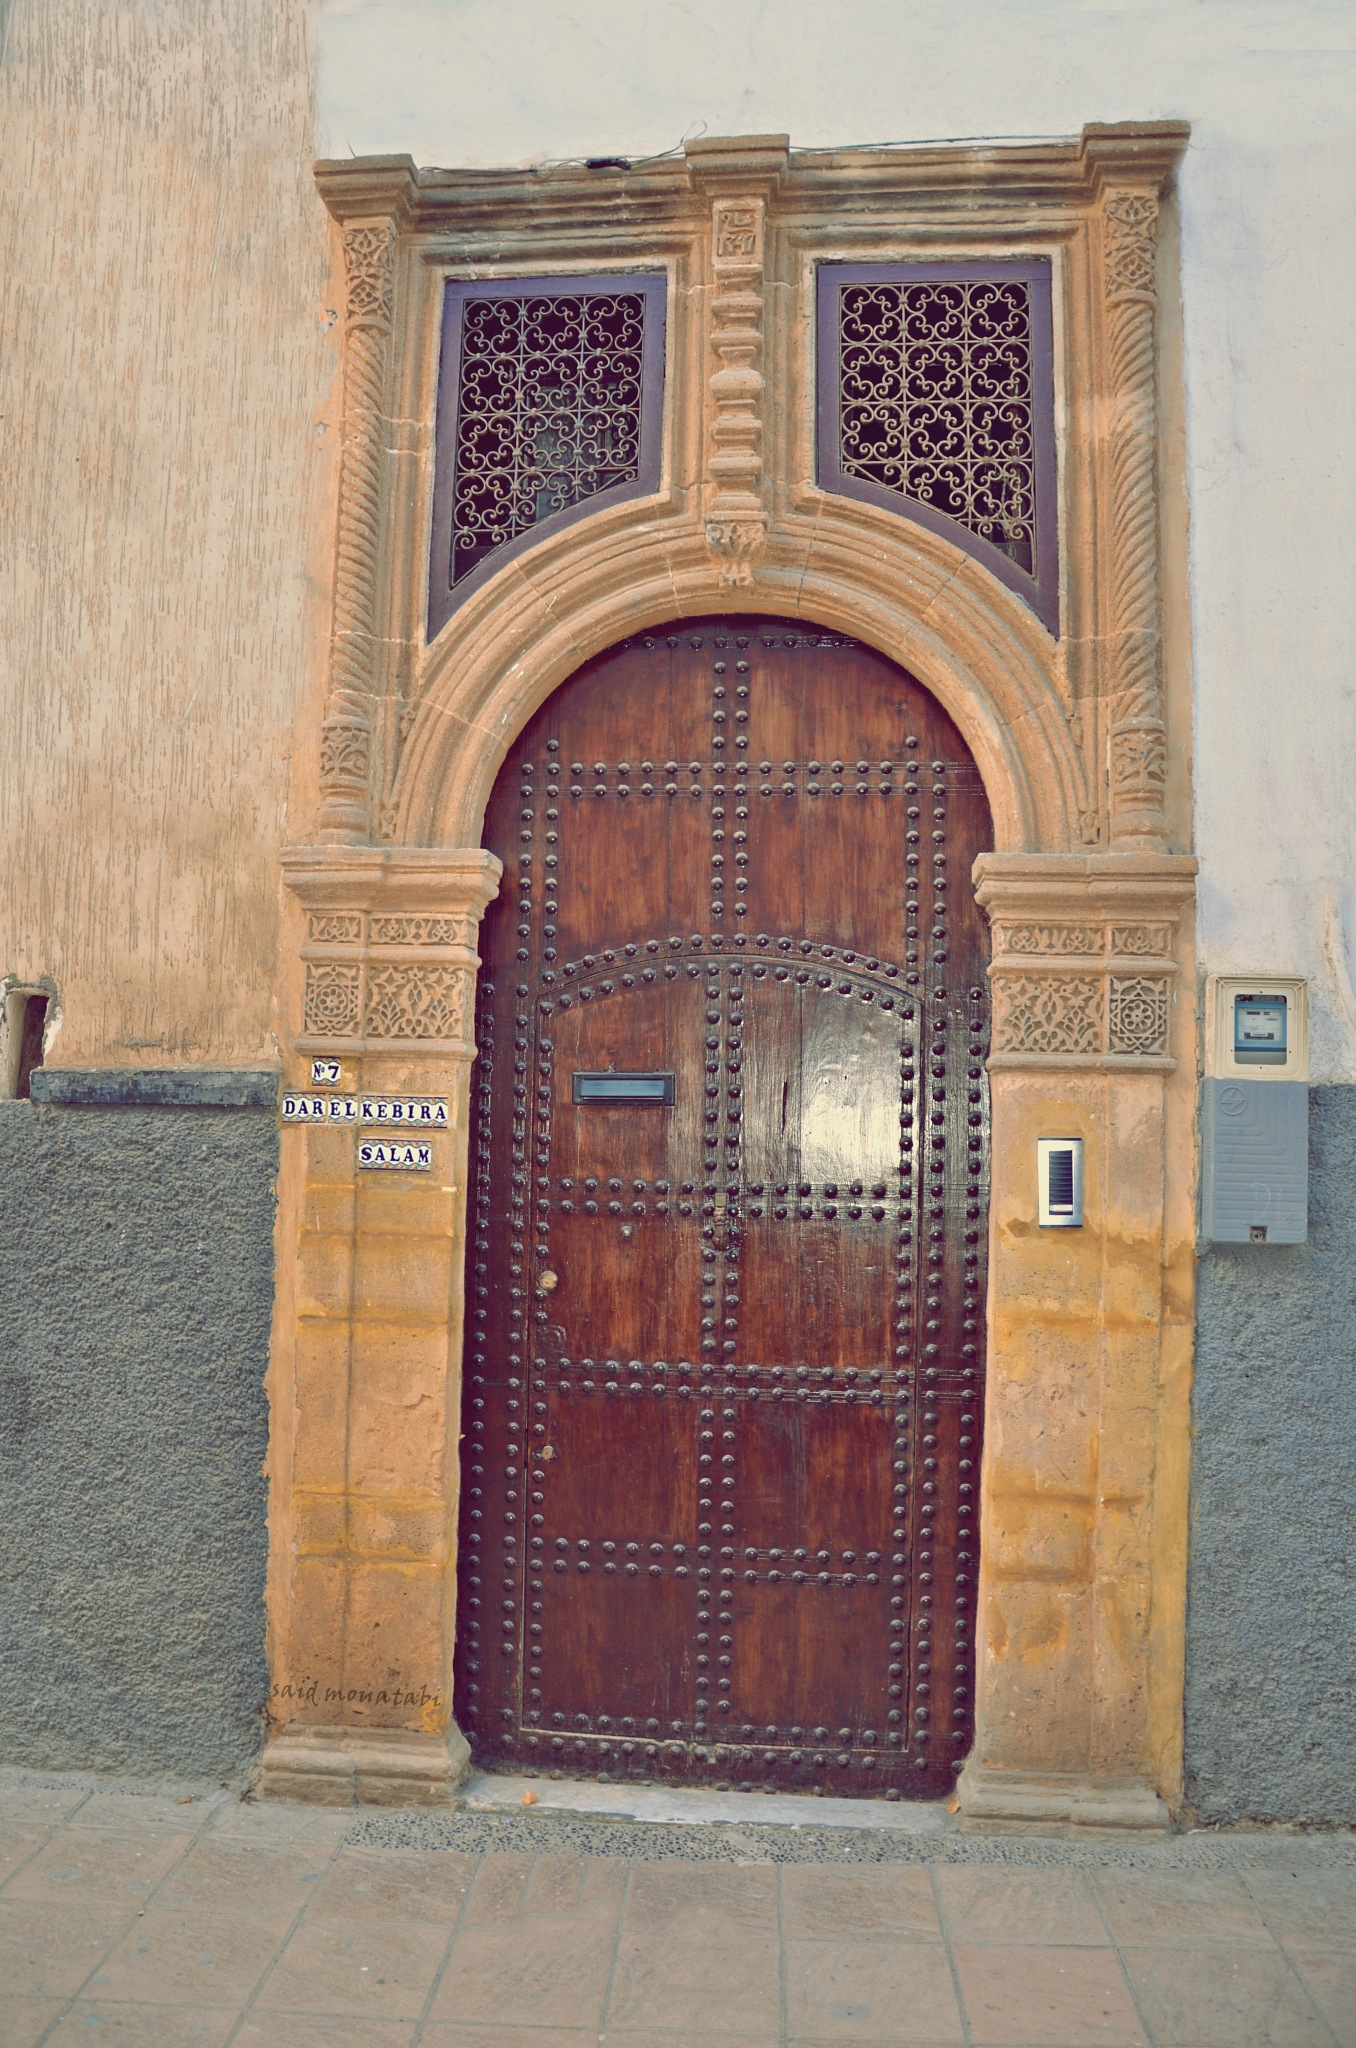 An old door in the city of Rabat by Said Mohtabi